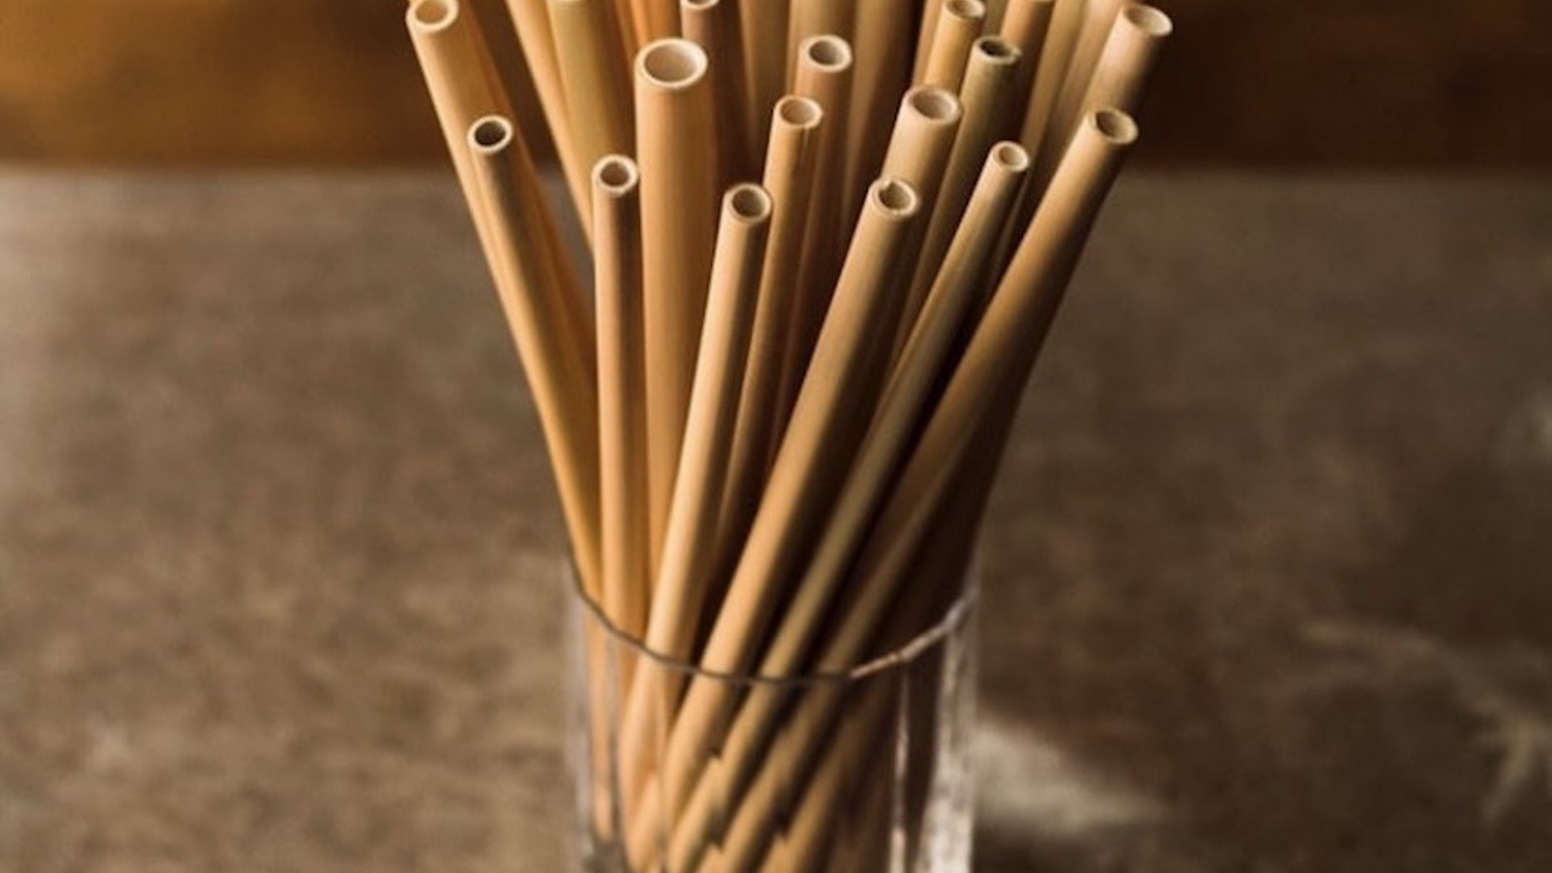 Bamboo Straws Coconut Bowls An End To Plastic By Maliha Rana